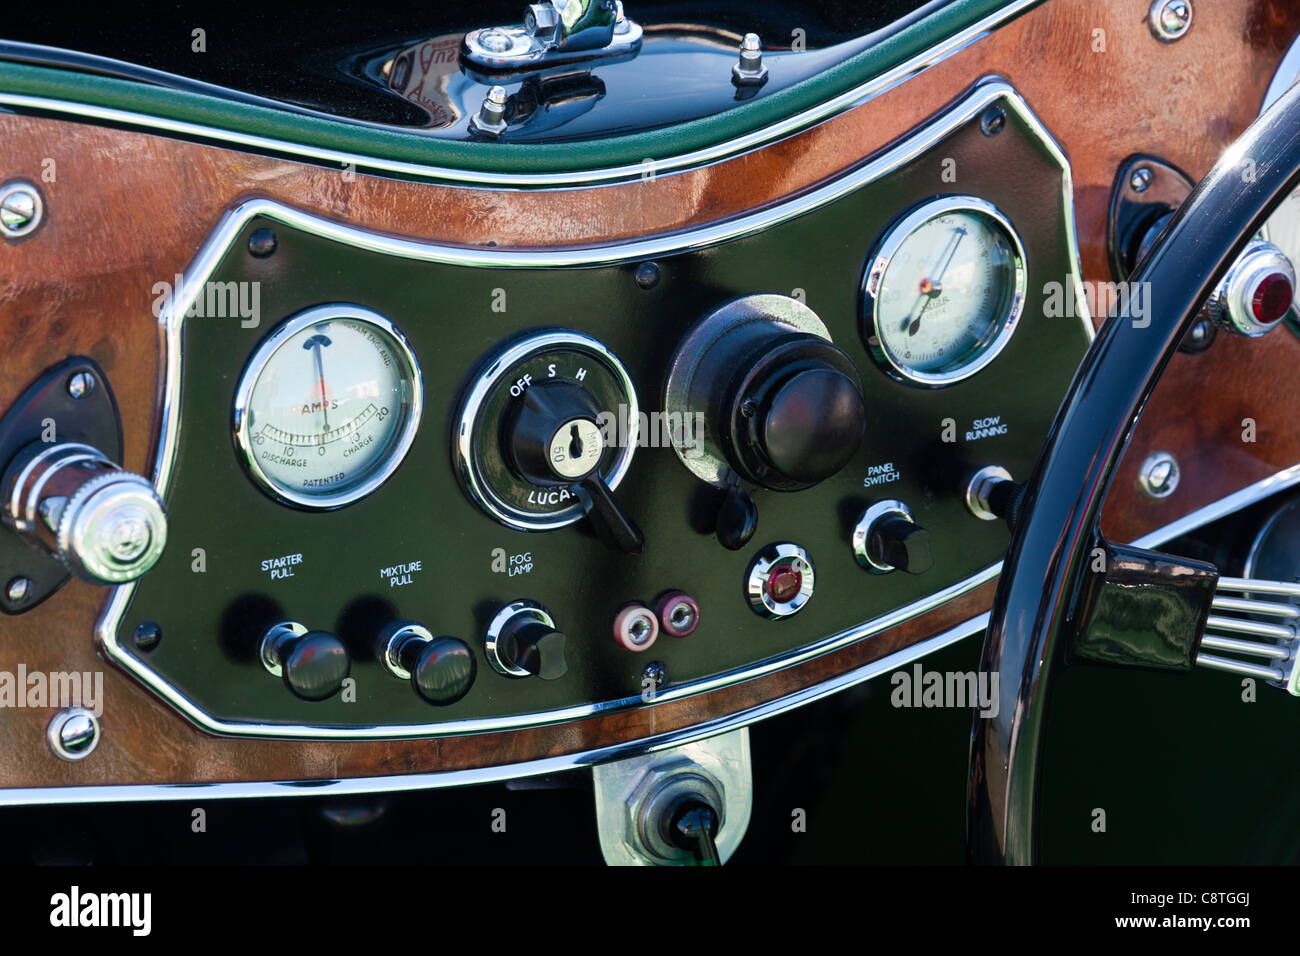 hight resolution of vintage classic car austen mg dashboard with real wood surround and dark